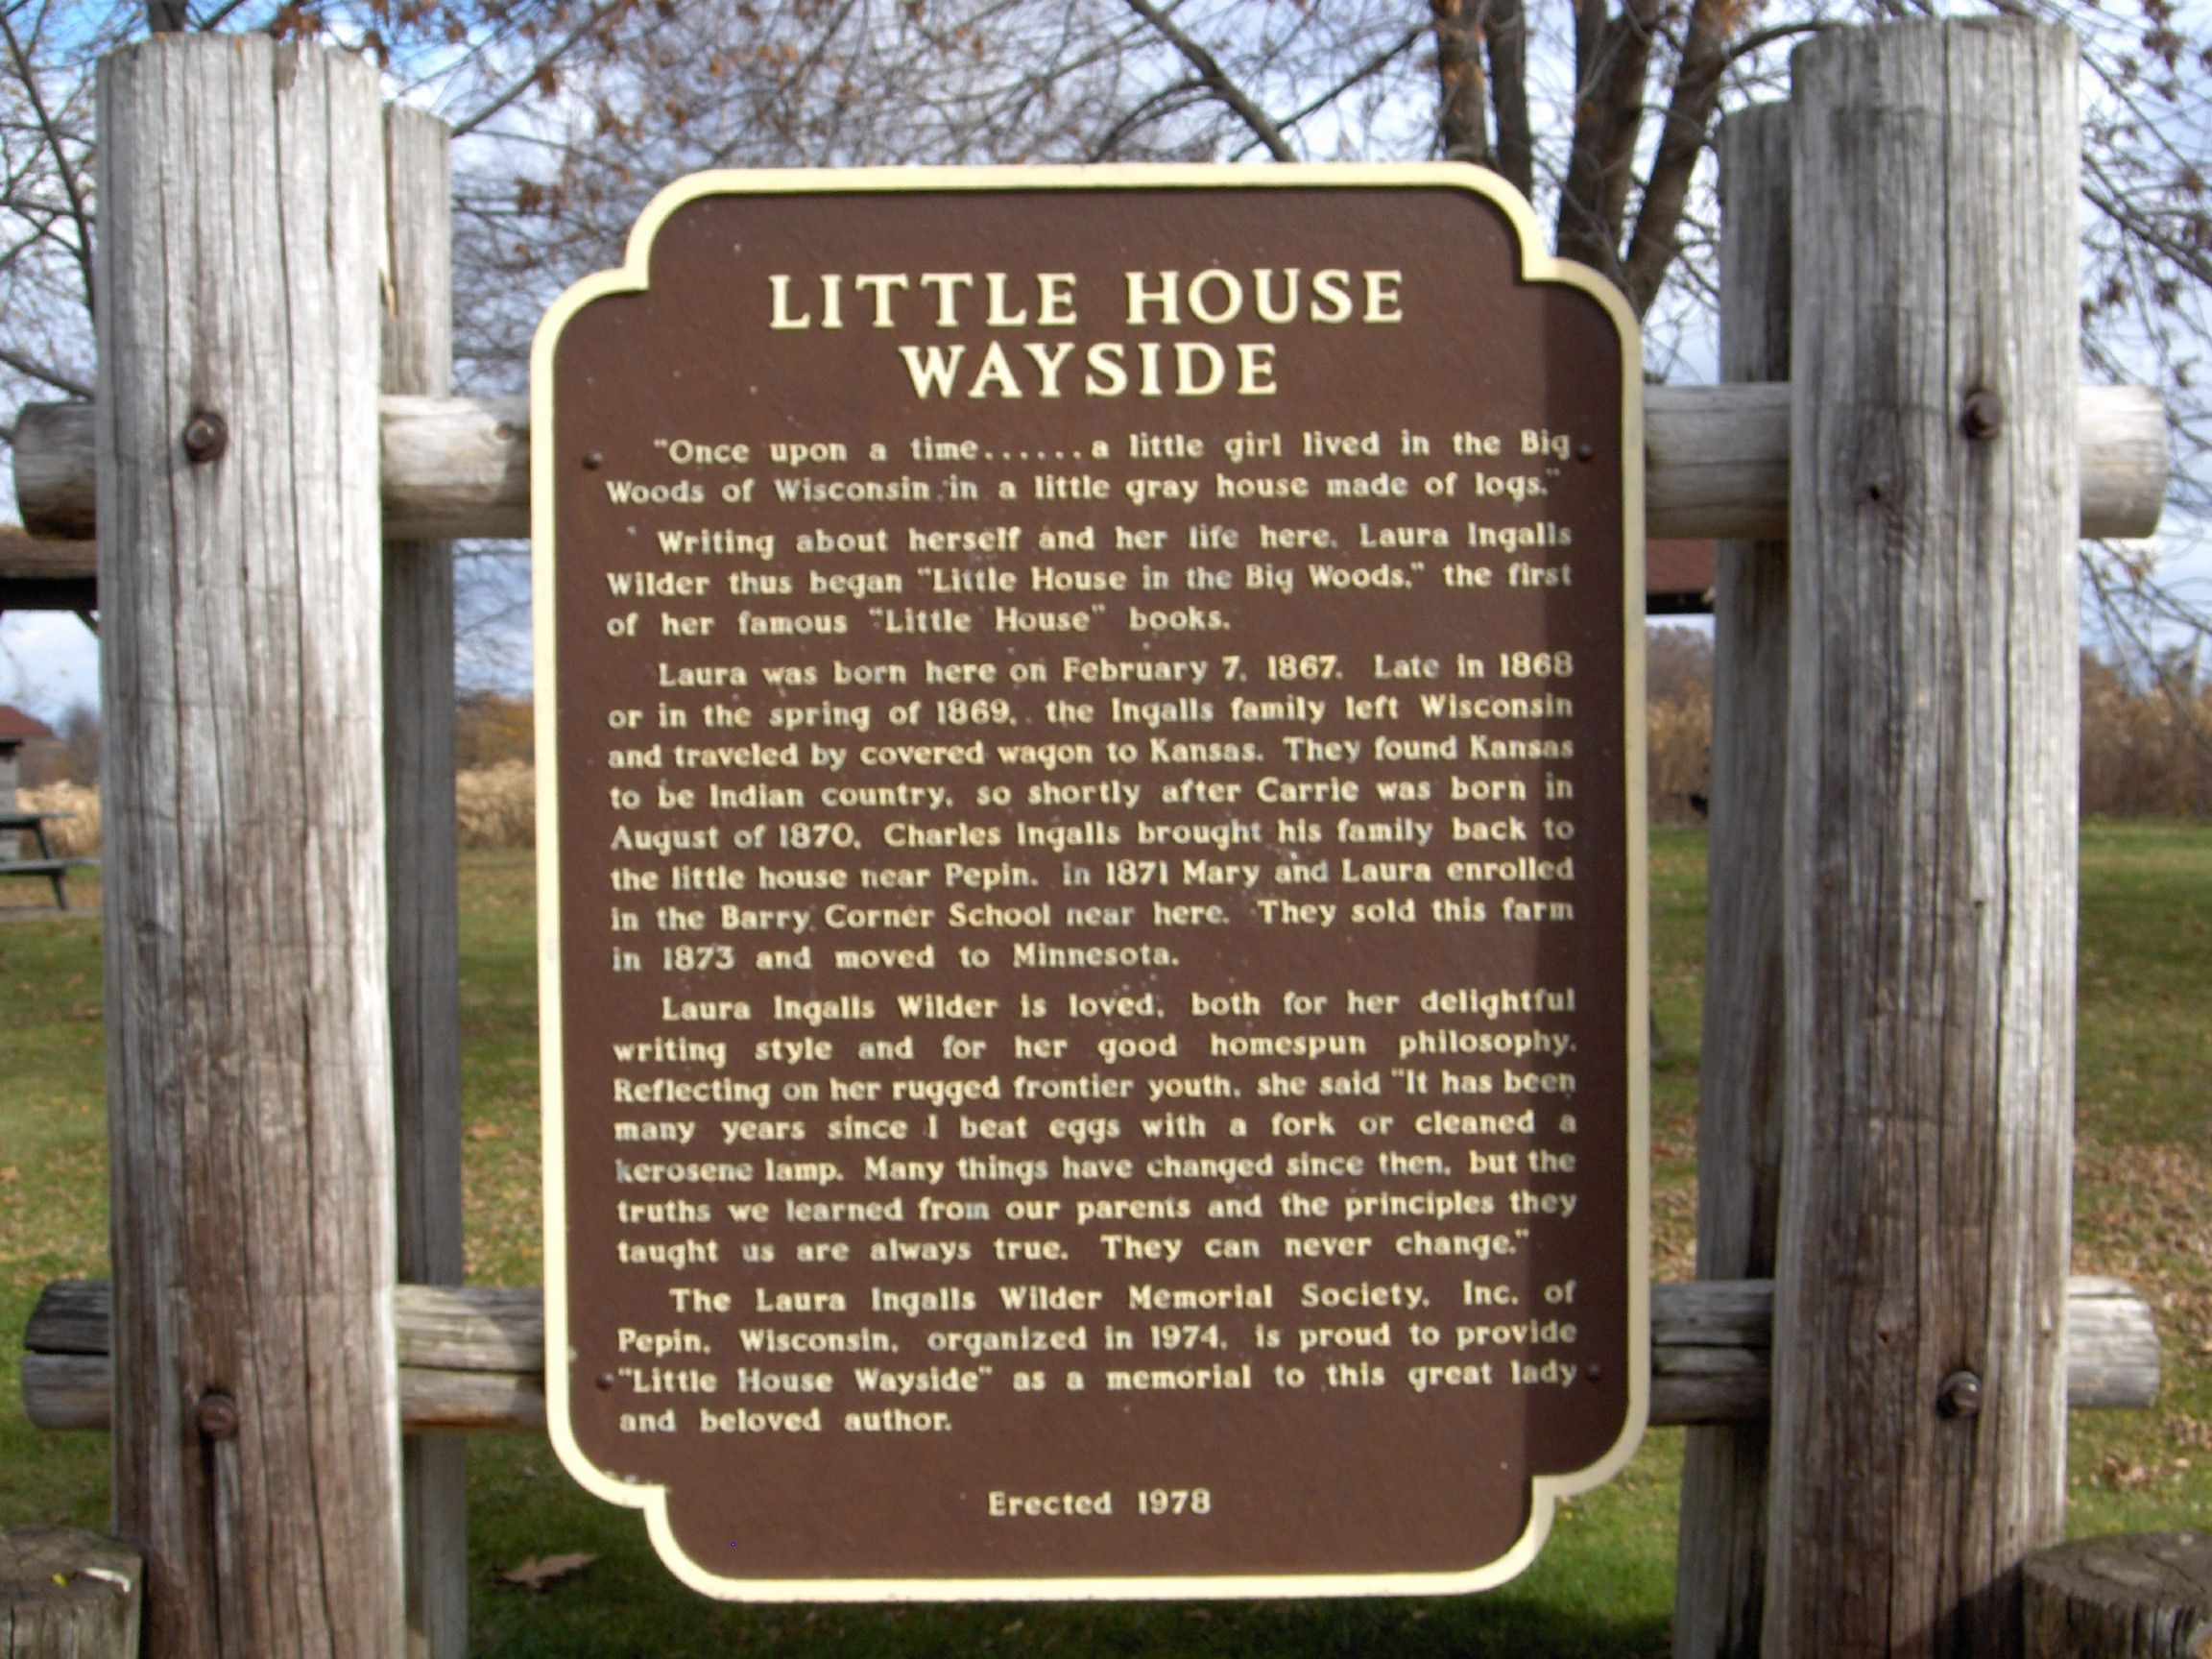 Pepin, Wi  Birthplace Of Laura Ingalls Wilder On Lake Pepin (great  Fishing) You Can Tour Laura's Little House In The Big Woods And The Liw  Museum